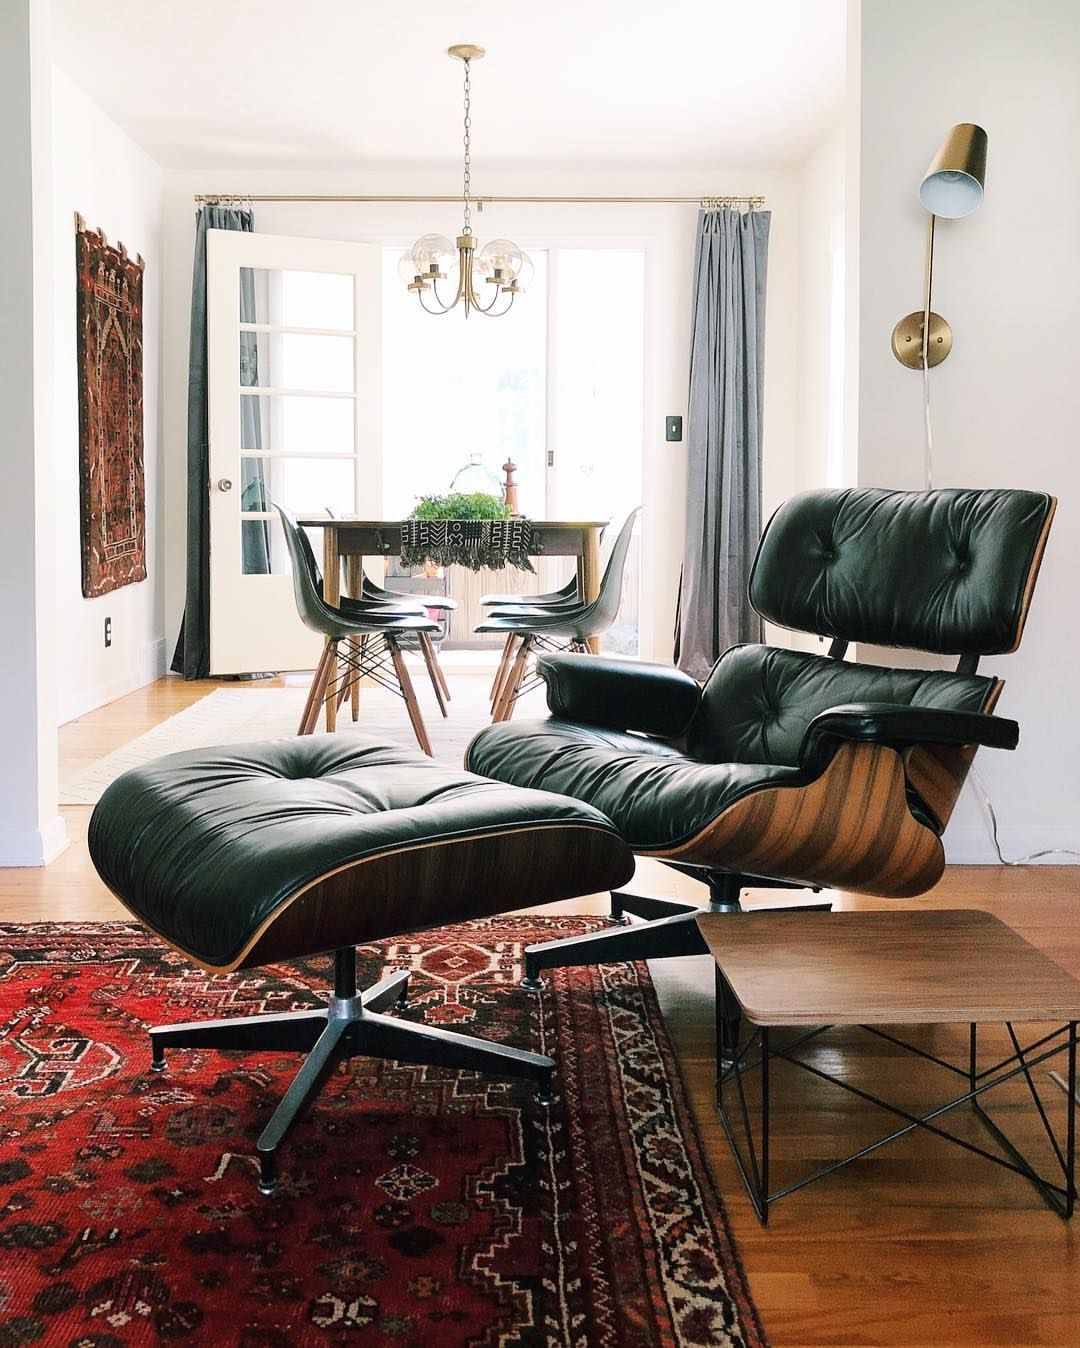 Is Your Eames Lounge Chair Authentic In 2020 Eames Chair Living Room Lounge Chairs Living Room Eames Lounge Chair Living Room